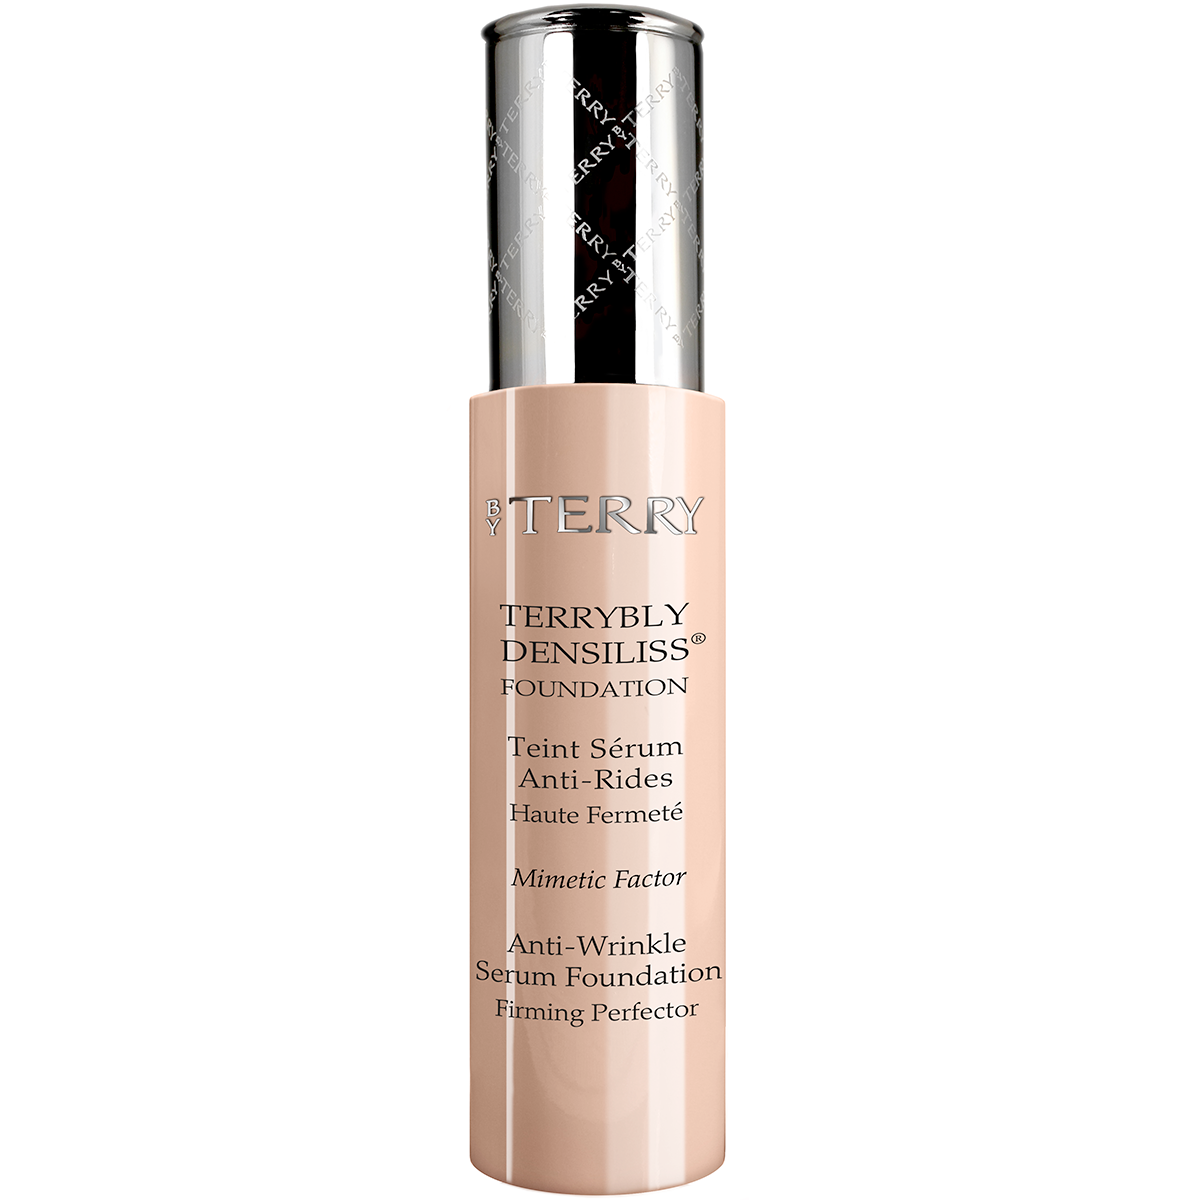 Terrybly Densiliss Foundation 30 ml By Terry Foundation